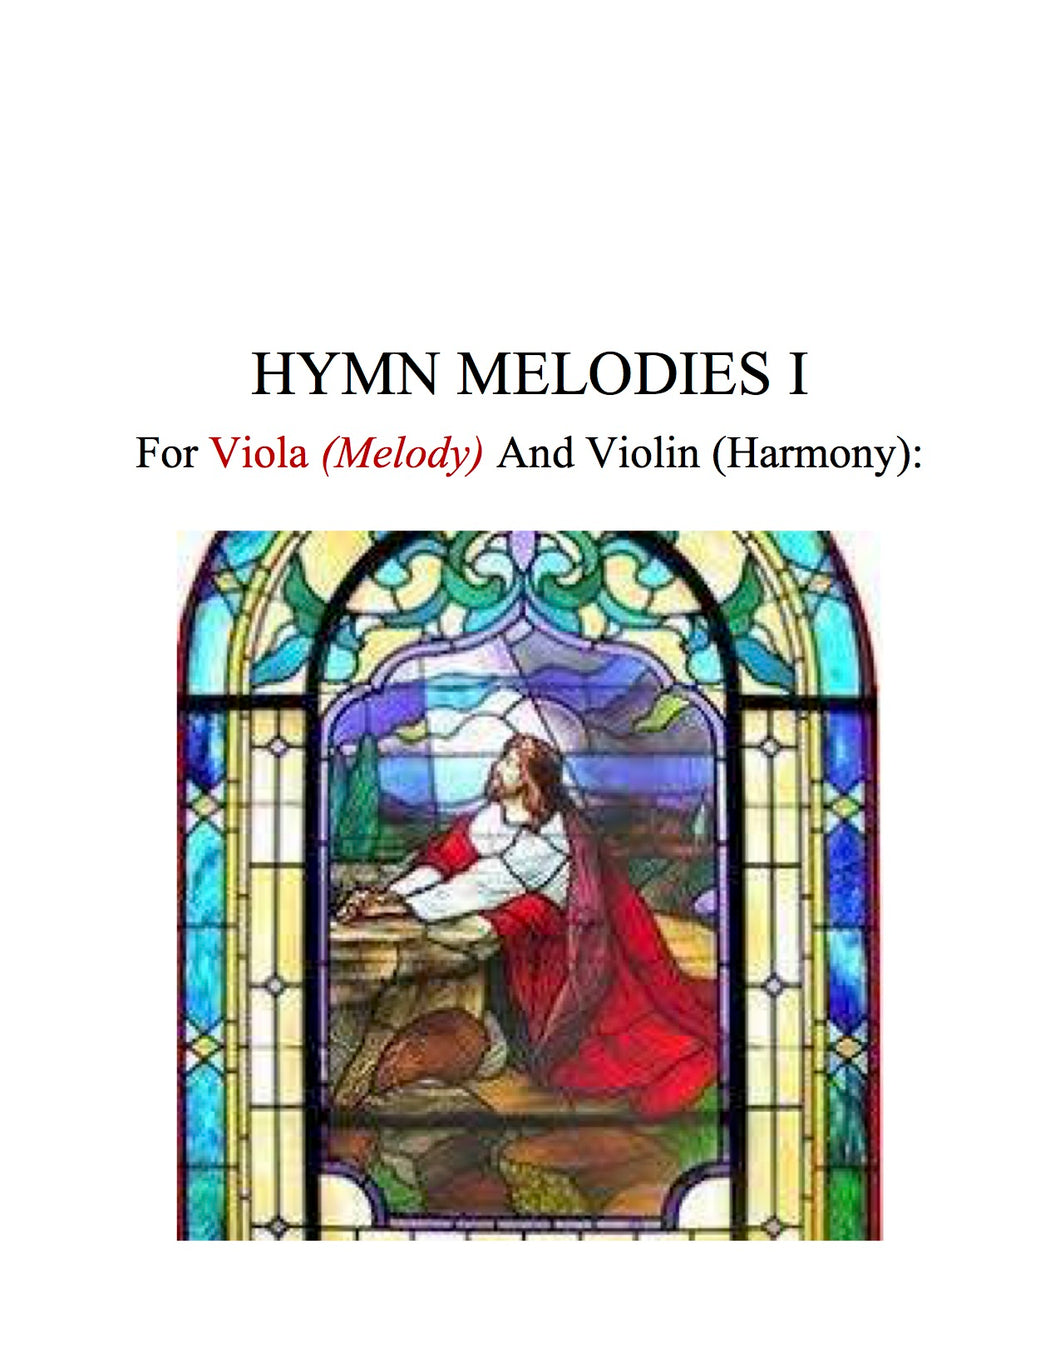 082 - Hymn Melodies For Viola and Violin, Volume I